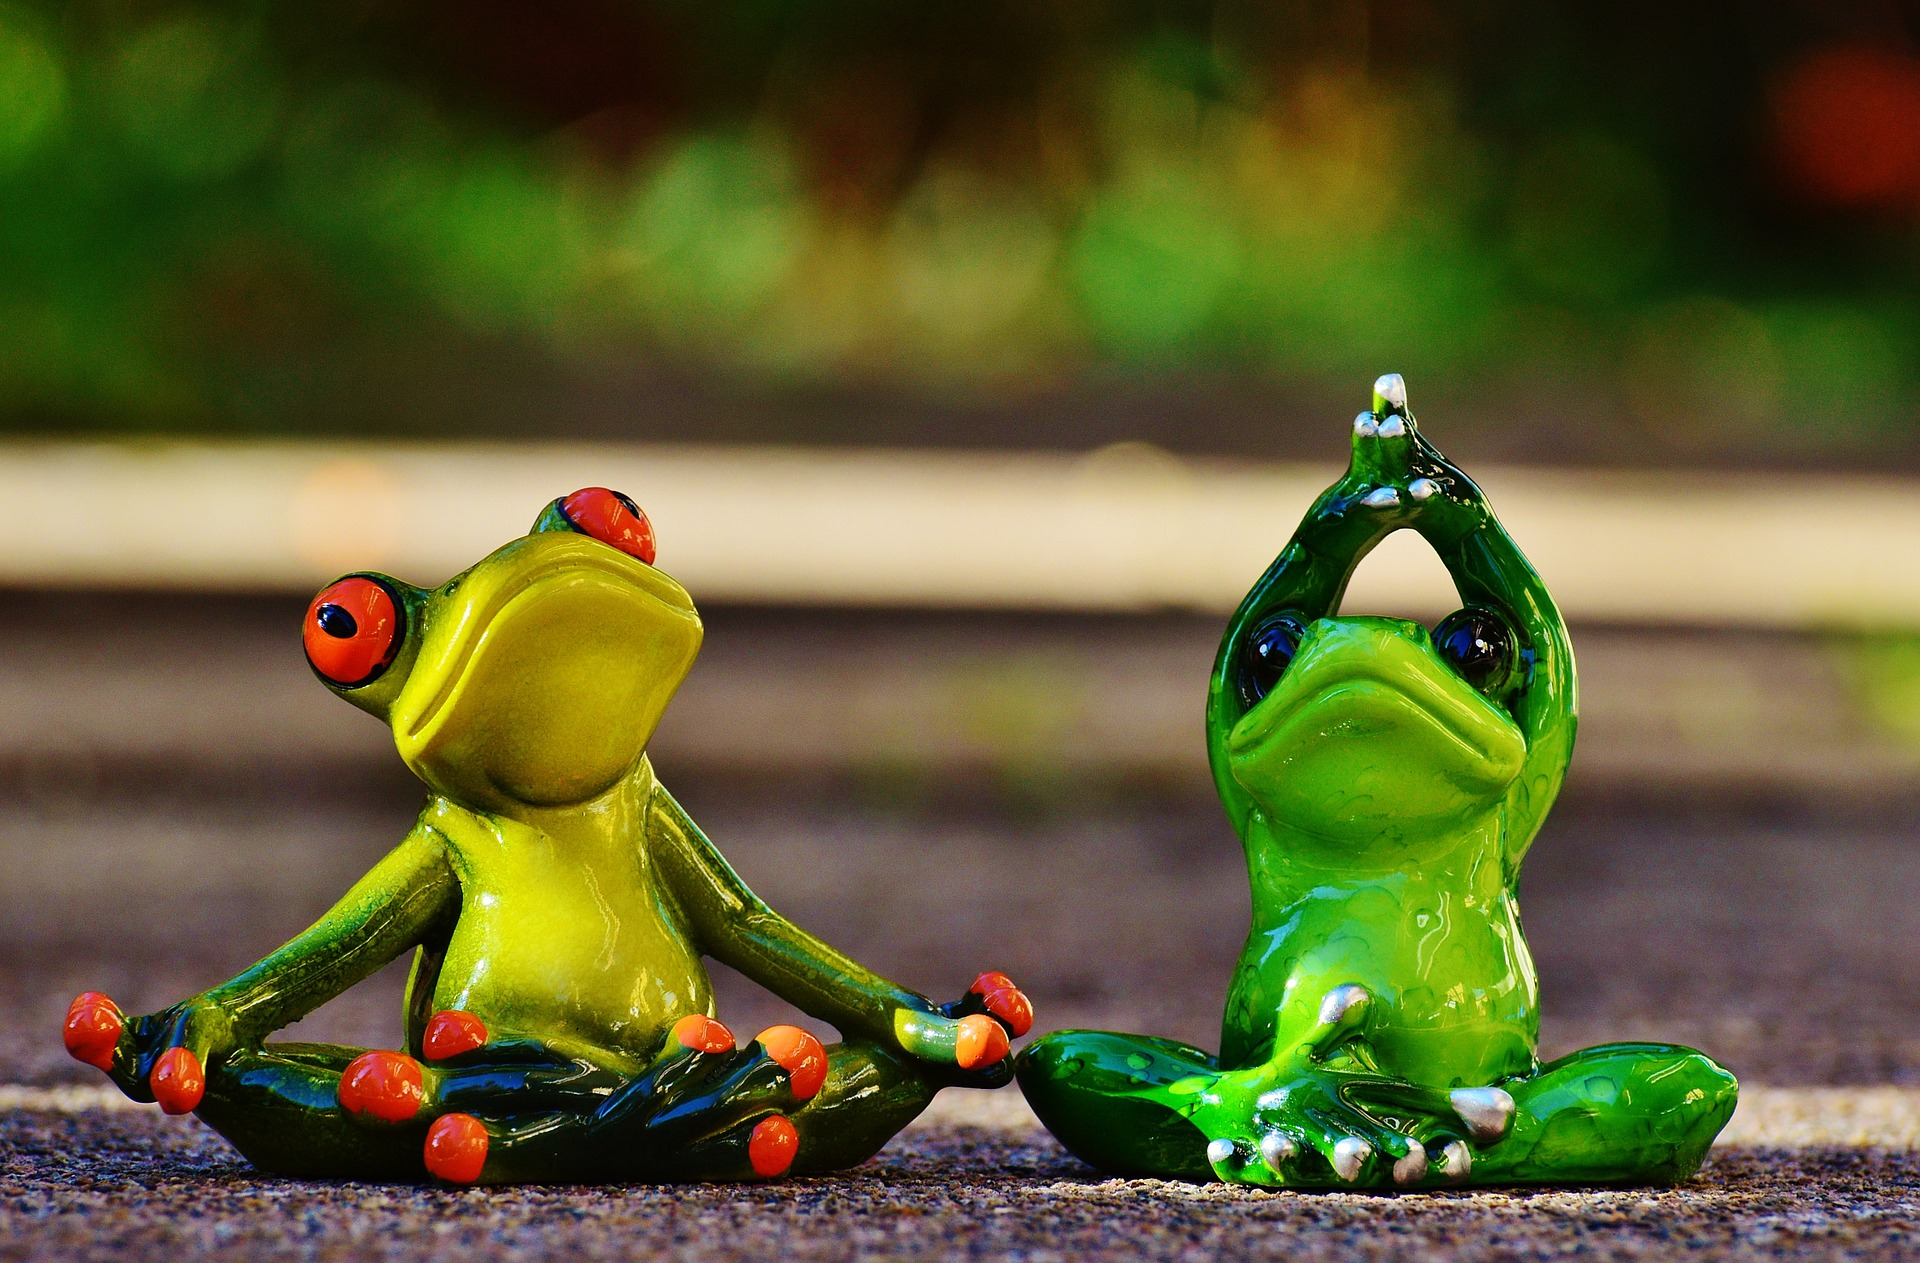 frogs-1030284_1920